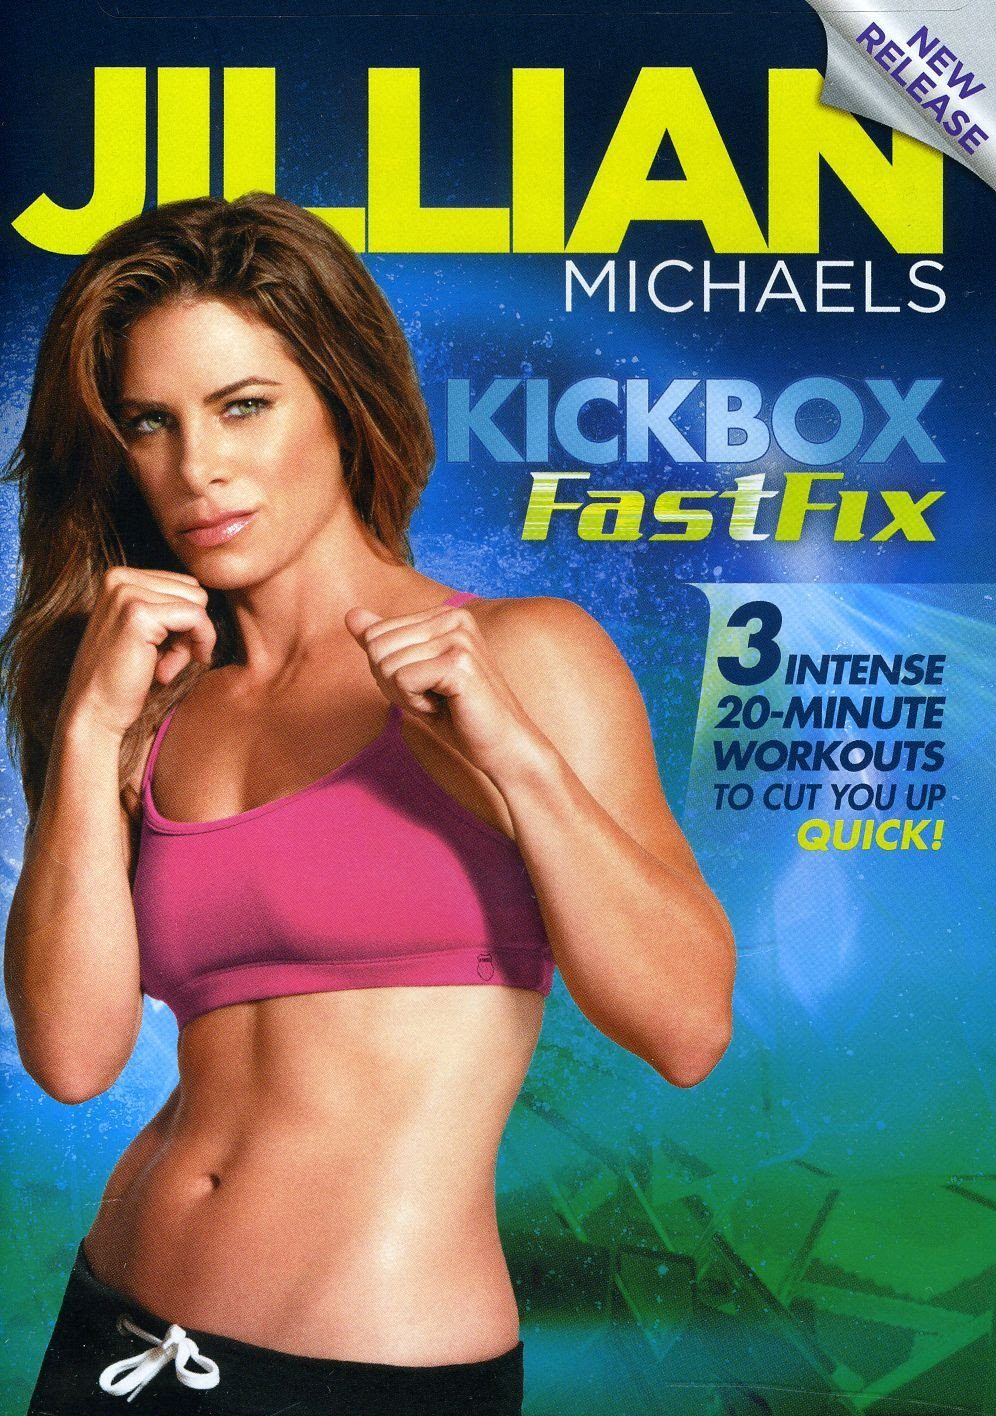 Workouts To Lose Weight Fast How To Lose Belly Fat Fast Weight Loss Plan Diet Tips Lose Weight Fast A also Cbeed D E B Efedab furthermore A De Acc B E Ef F Eb further Dbb Aebbfa Ca F E Abe C furthermore C B F B Ad Ac The Cheerleaders Cheerleader Images. on yoga routines for weight loss